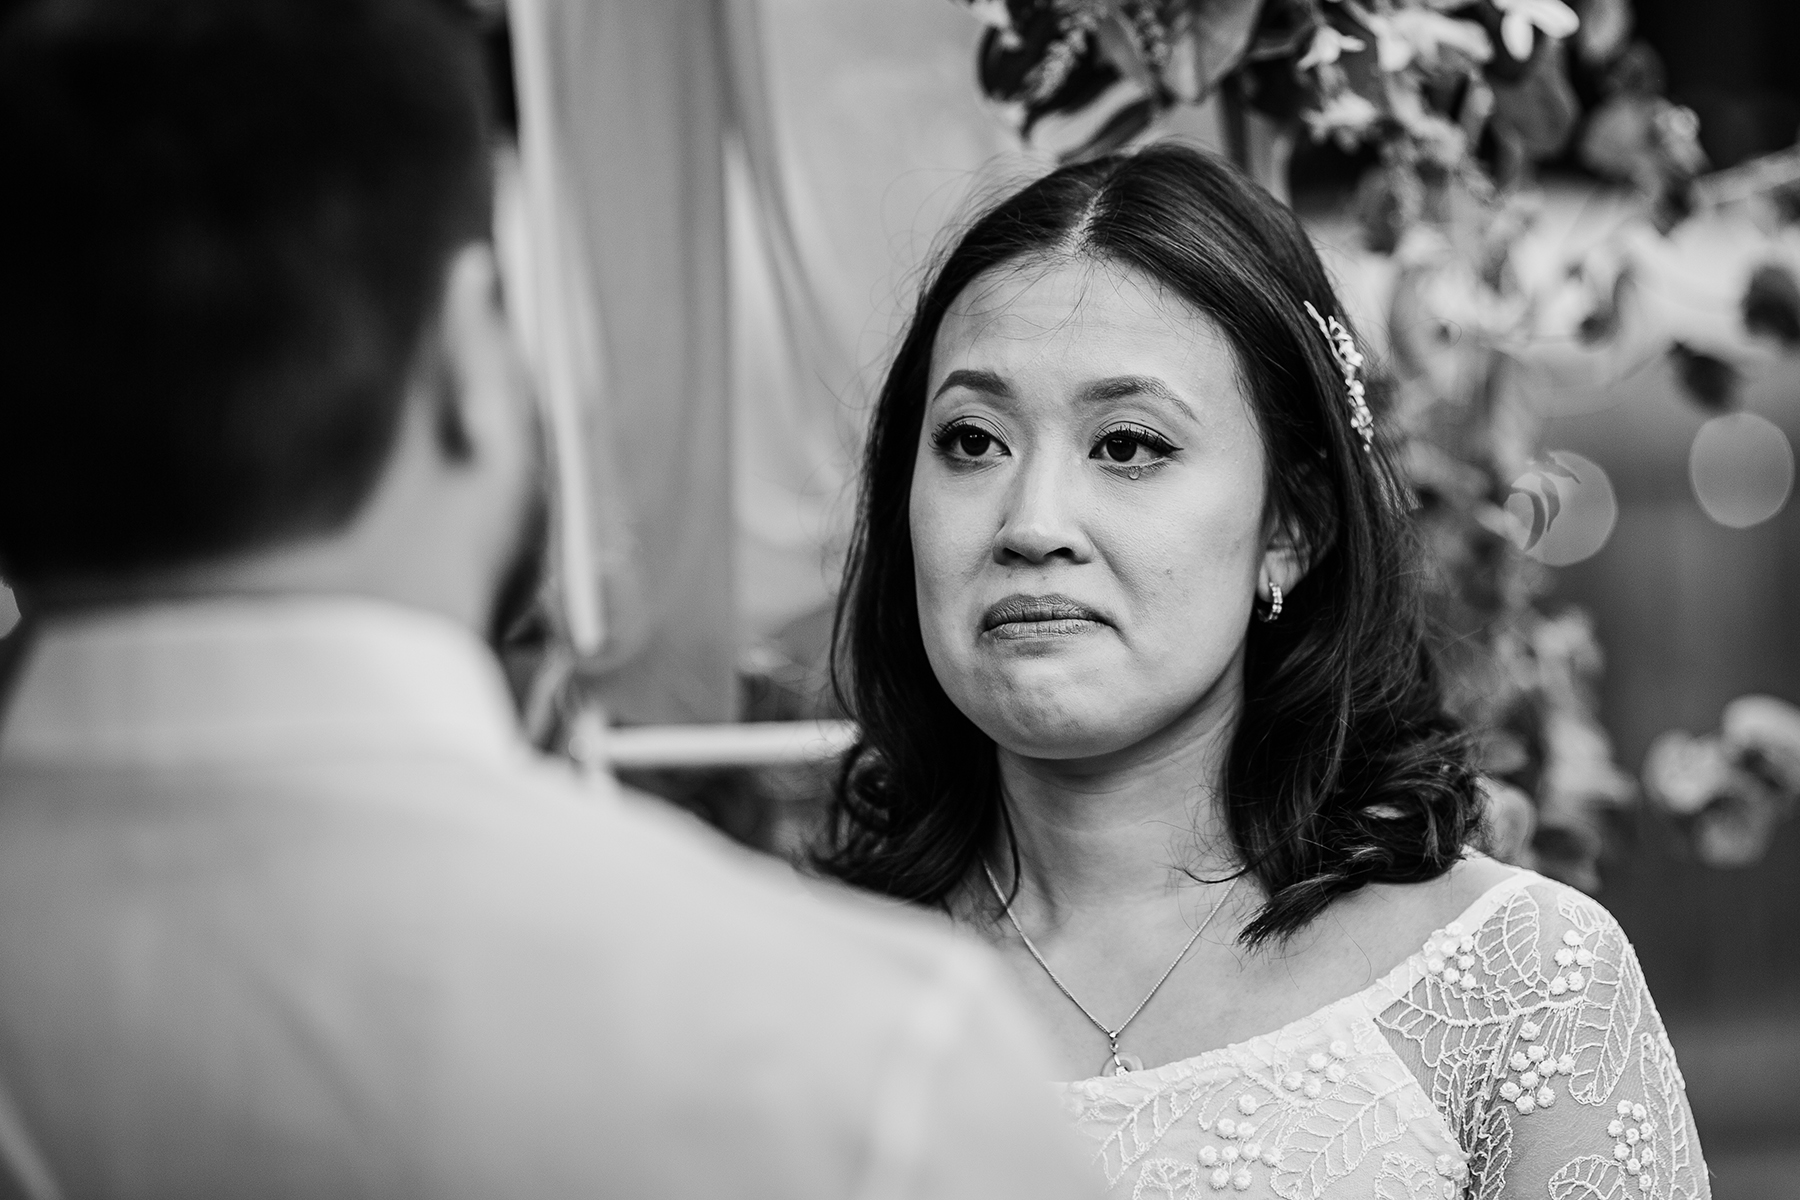 CA Home Elopement Ceremony Image | The bride starts to become a bit emotional and sheds a few tears